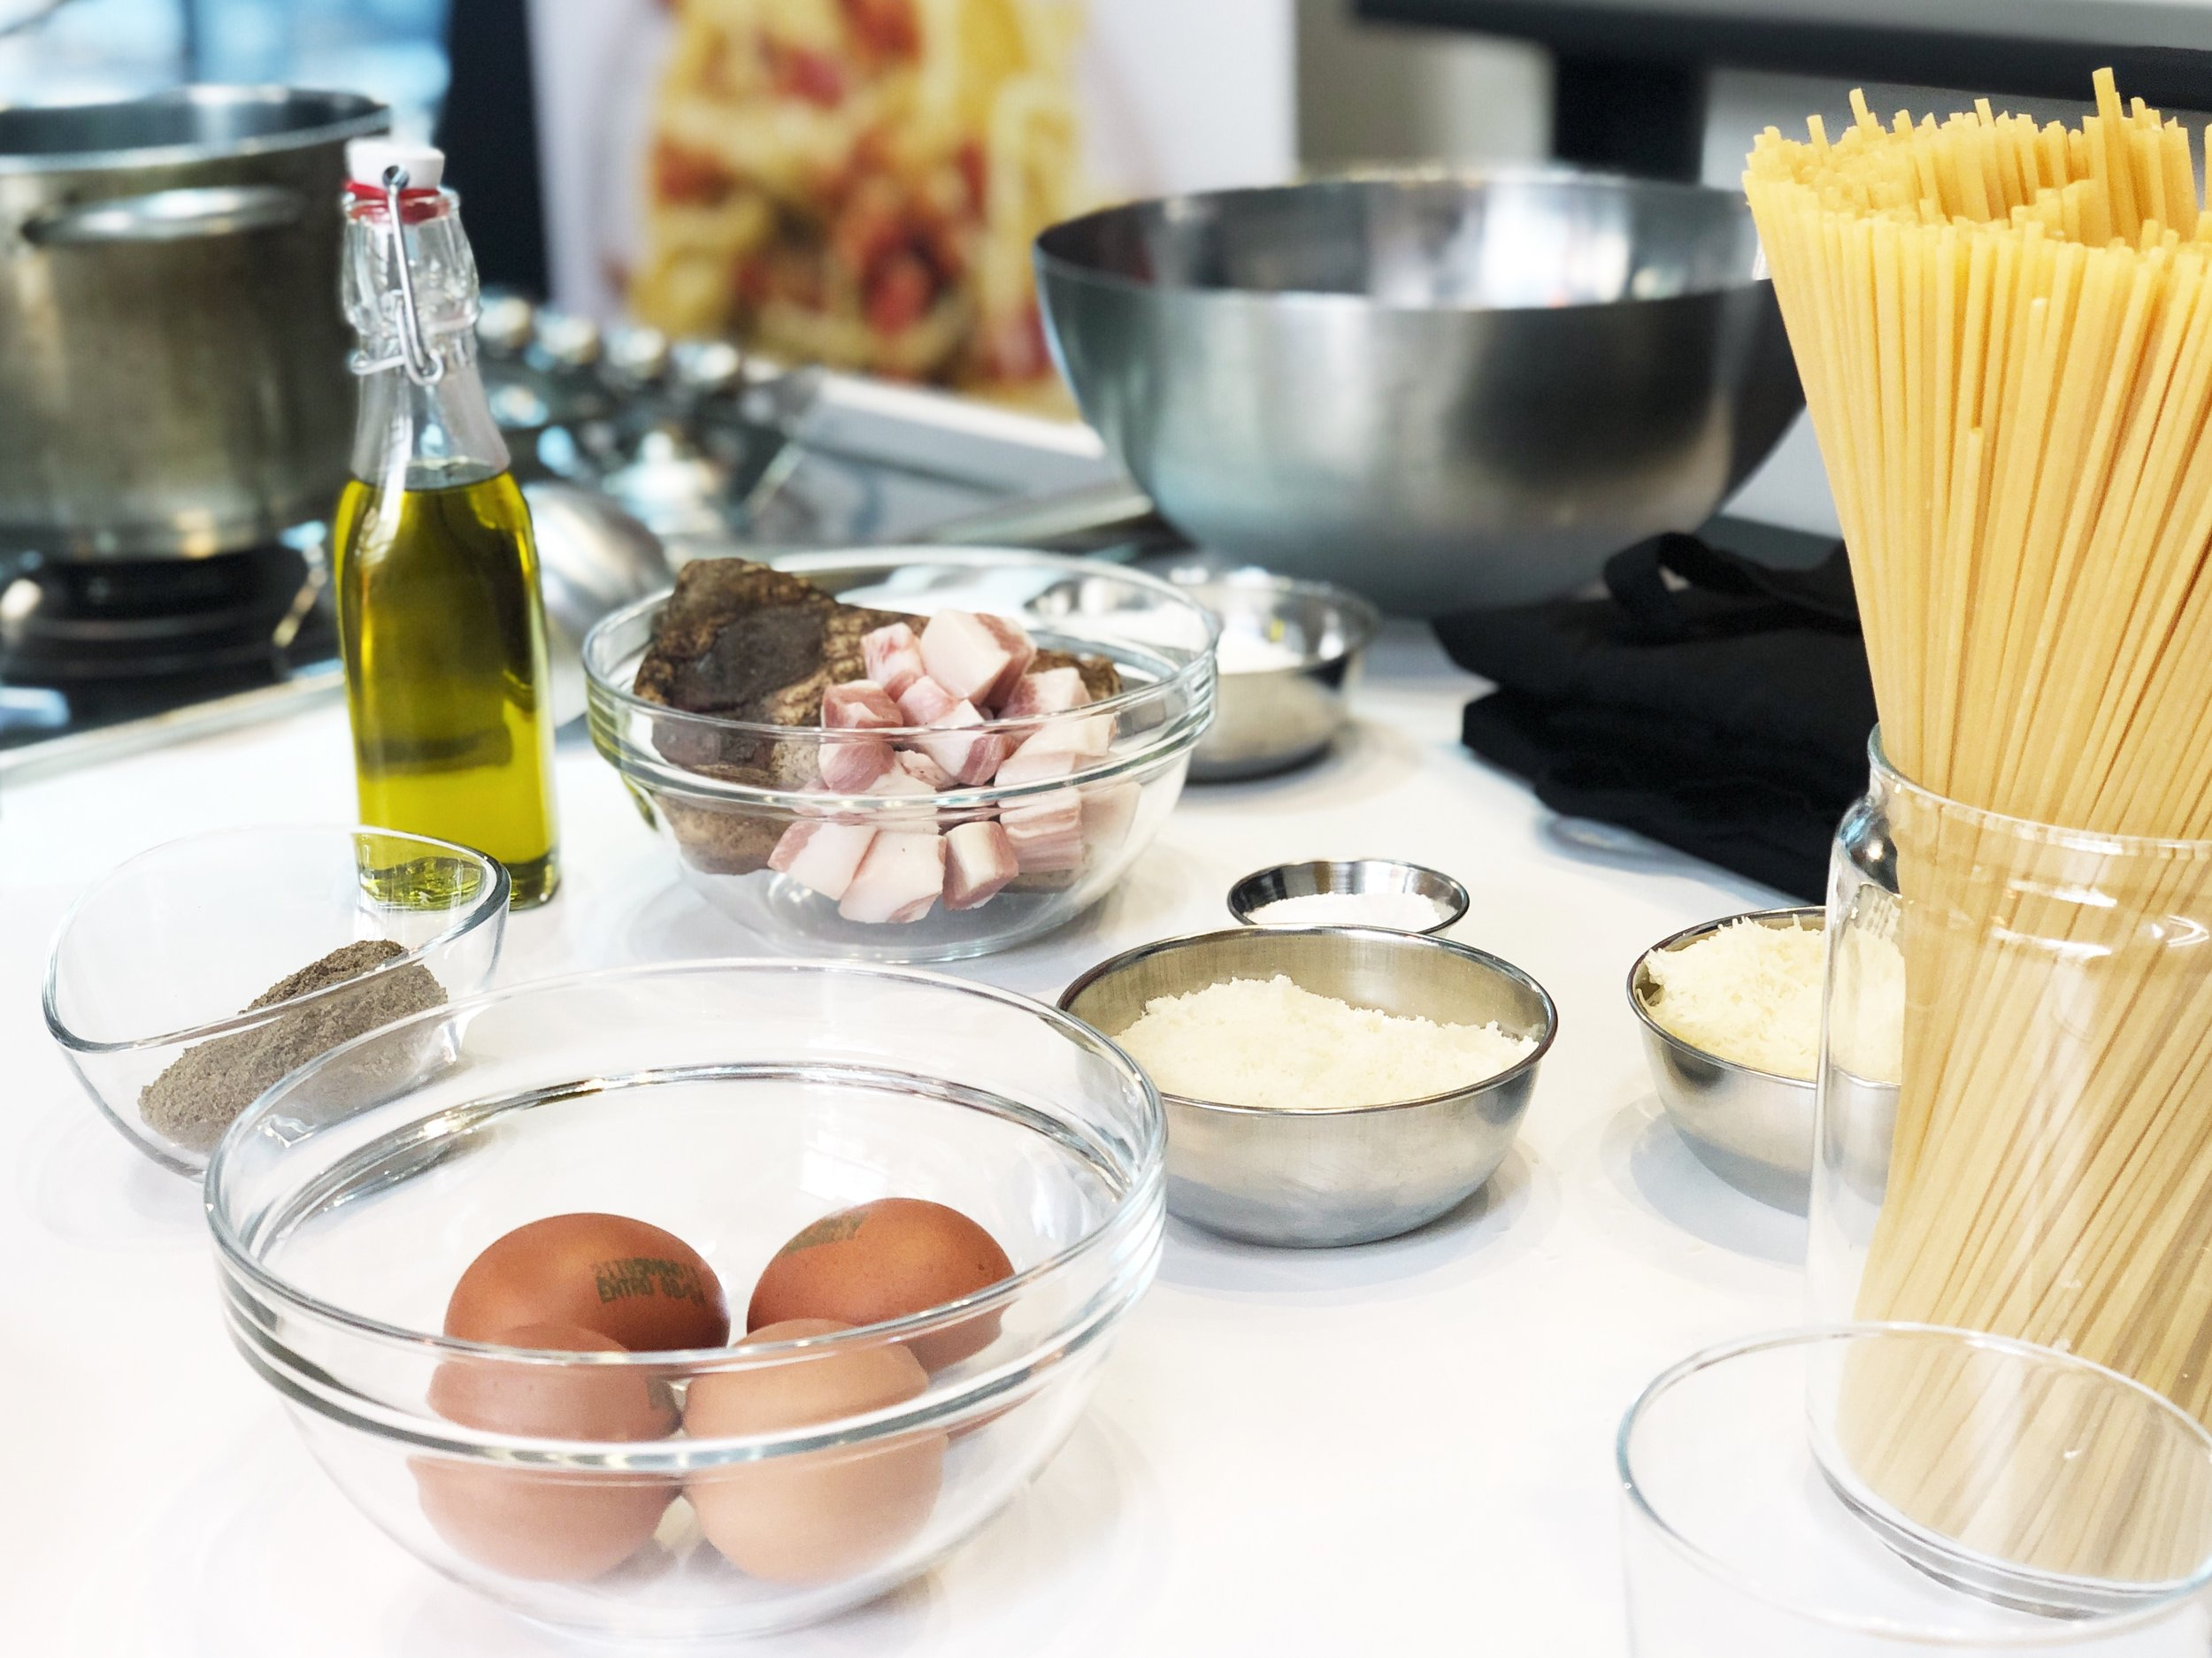 Carbonara's key ingredients. Photo: Erica Firpo